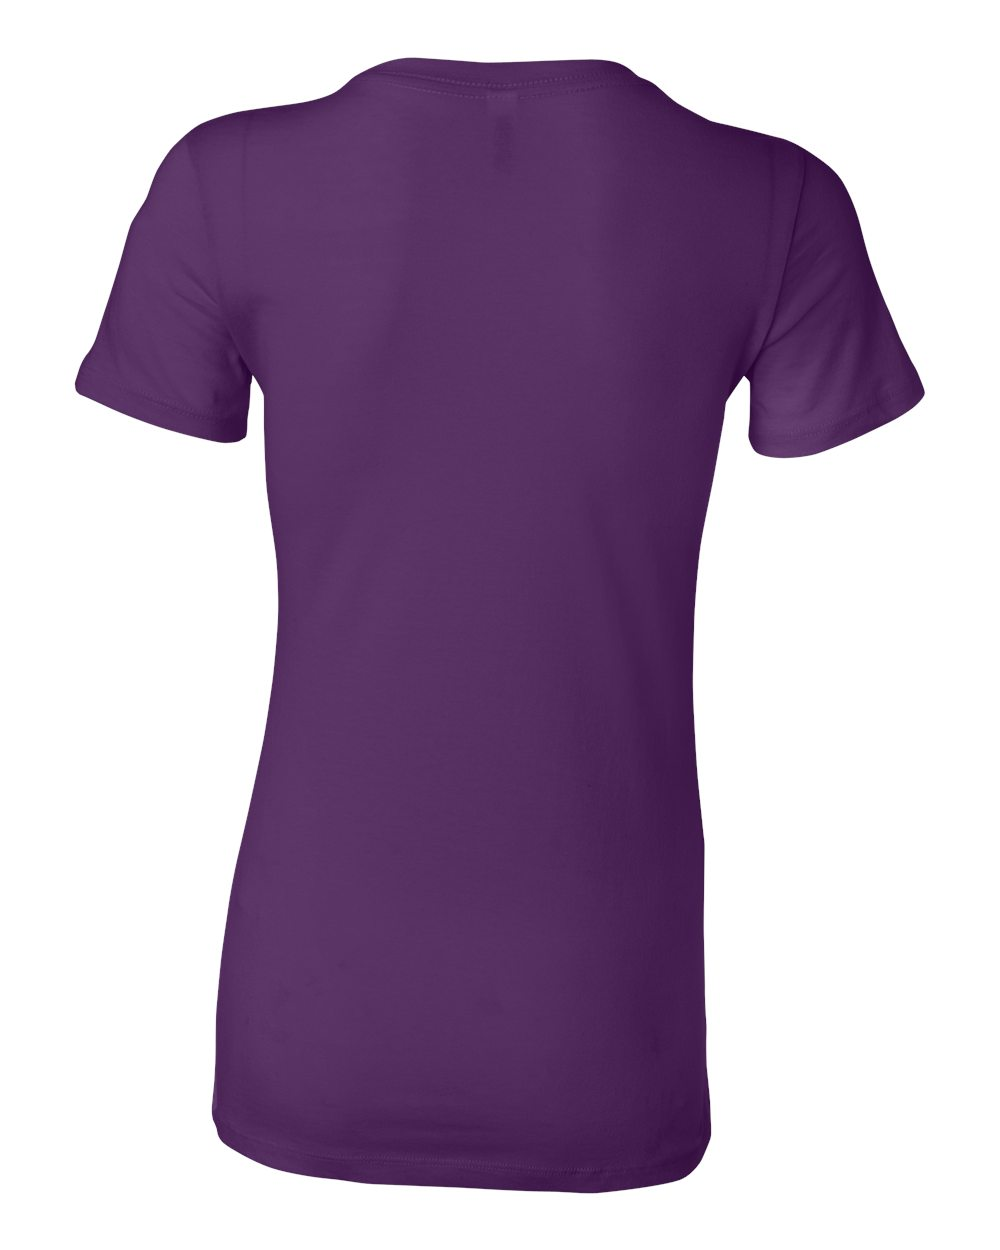 Bella-Canvas-Womens-The-Favorite-T-Shirt-6004-Size-S-2XL thumbnail 163